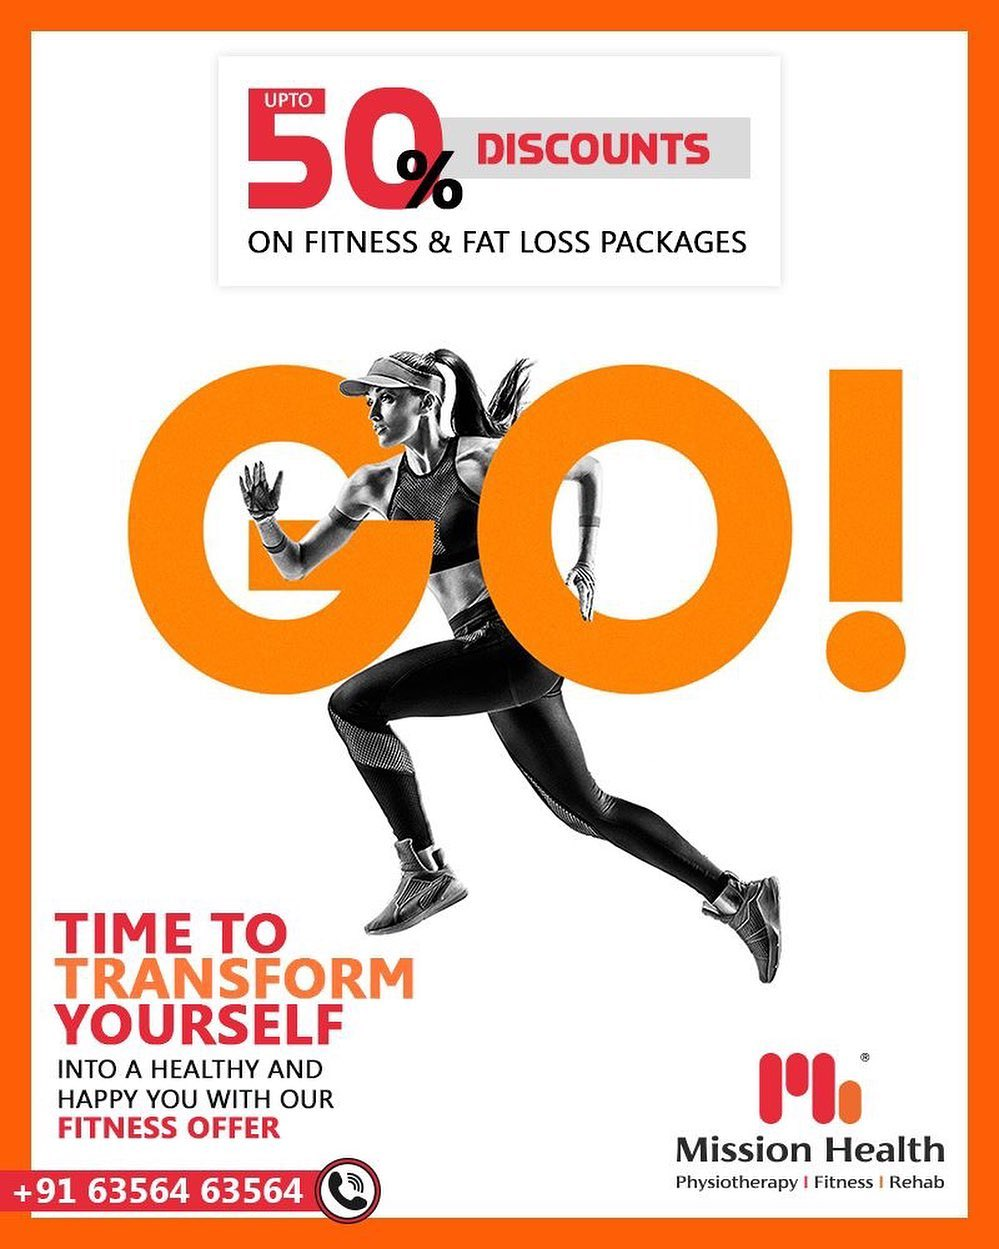 Make your fitness goals come true with our fitness offer  Up to 50% off in various fitness & inch loss packages at Mission Health Fitness Boutique. Few days left, hurry up!  Call: +916356463564 Visit: www.missionhealth.co.in  #fitnesspackages #gymoffers #inchloss #fitnessworkout #fitness #fitnessmotivation #workout #fitnesslife #gym #workoutmotivation #fitnessaddict #fitnesscoaching #healthchallenge #MissionHealth #MissionHealthIndia #MovementIsLife